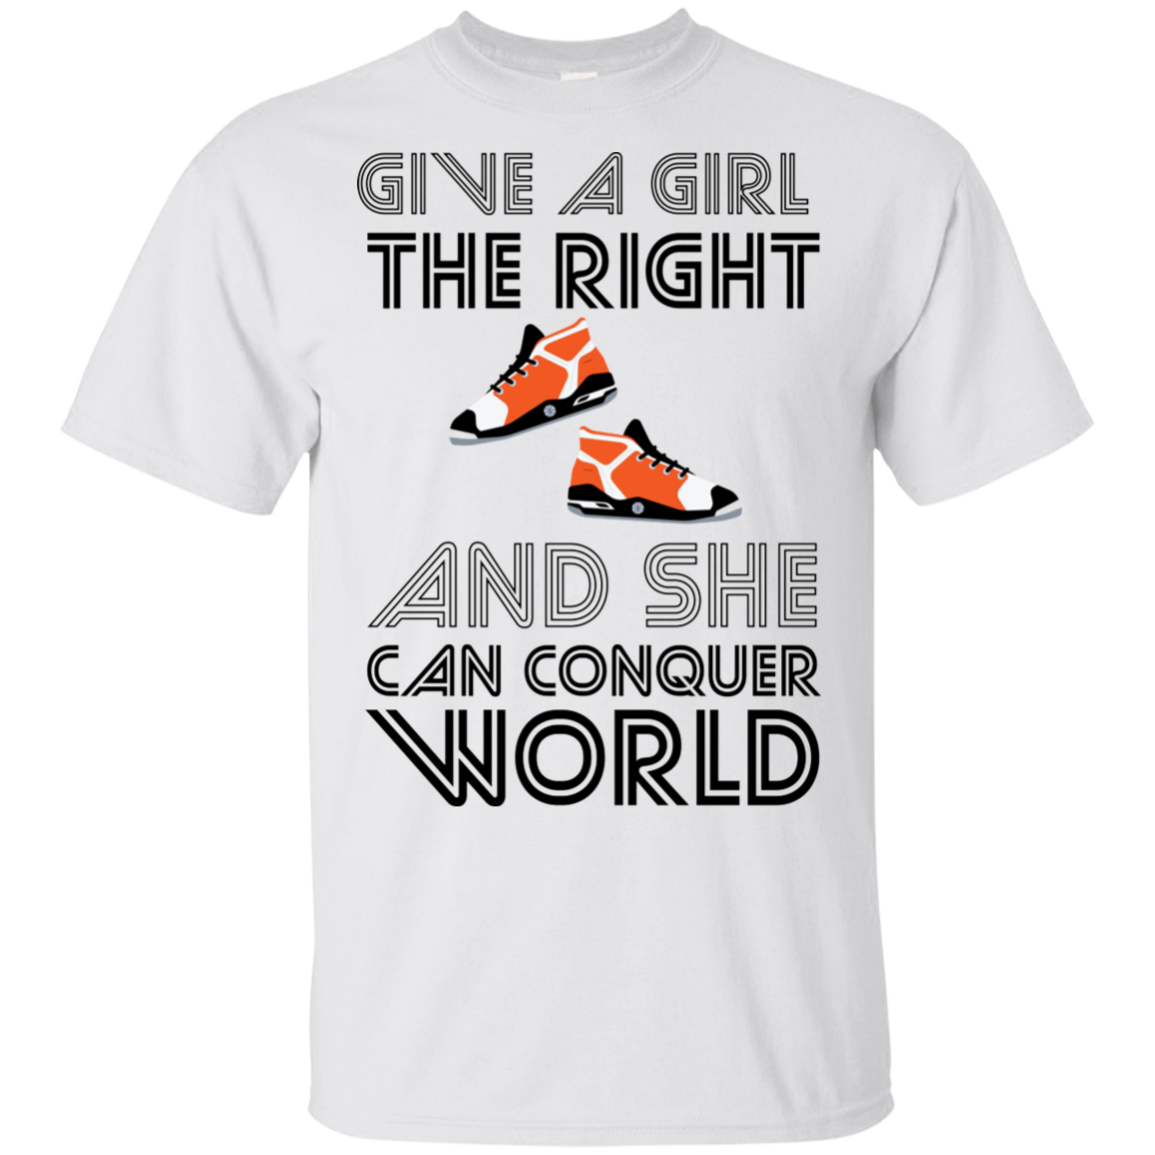 Give a girl the right shoes and she can conquer the world v2 Ultra Cotton T-Shirt